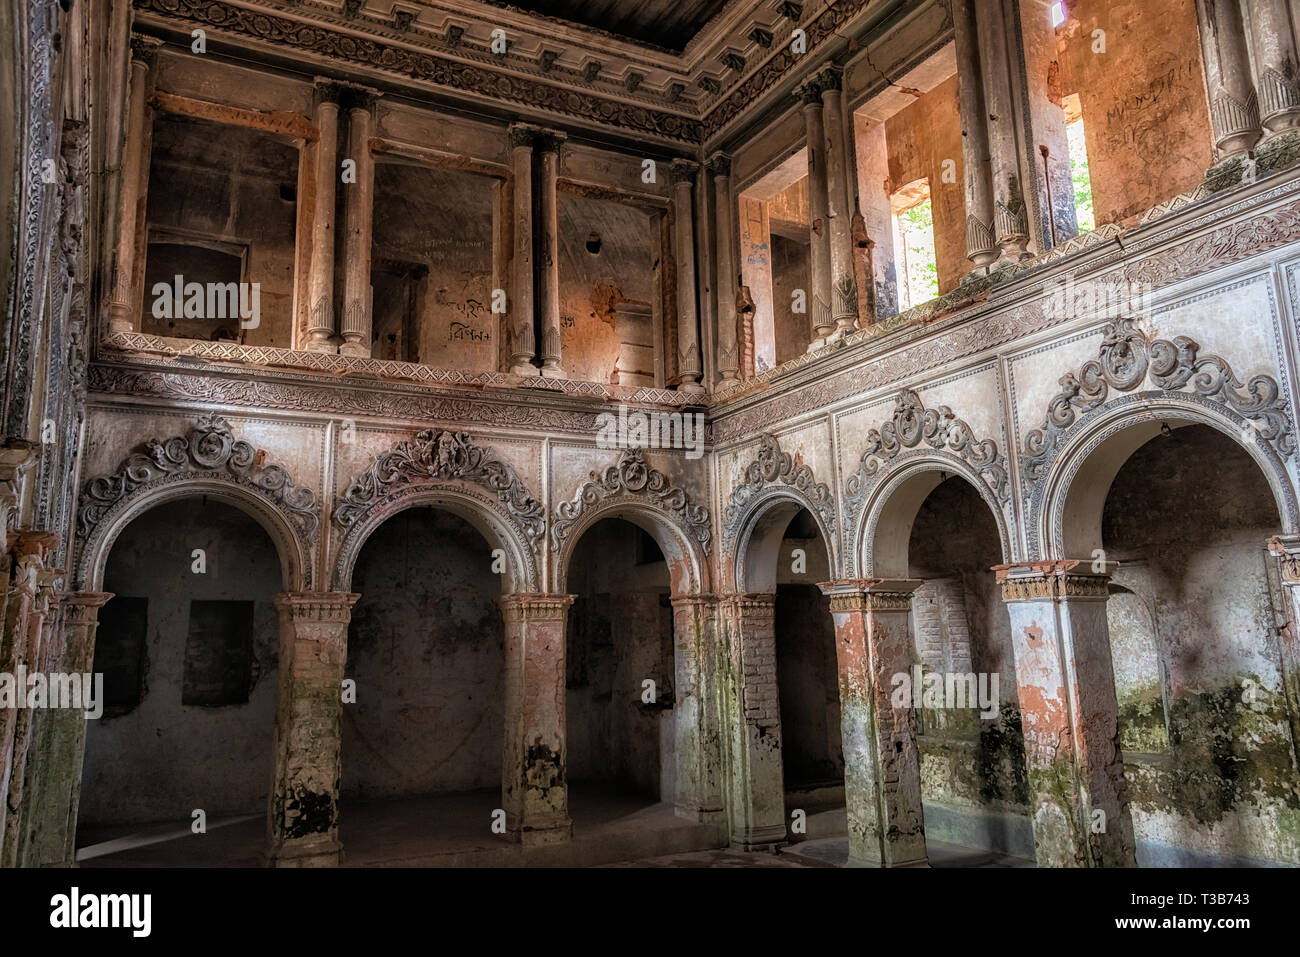 Ancient buildings of Panam City, Sonargaon, Narayanganj, Dhaka Division, Bangladesh - Stock Image